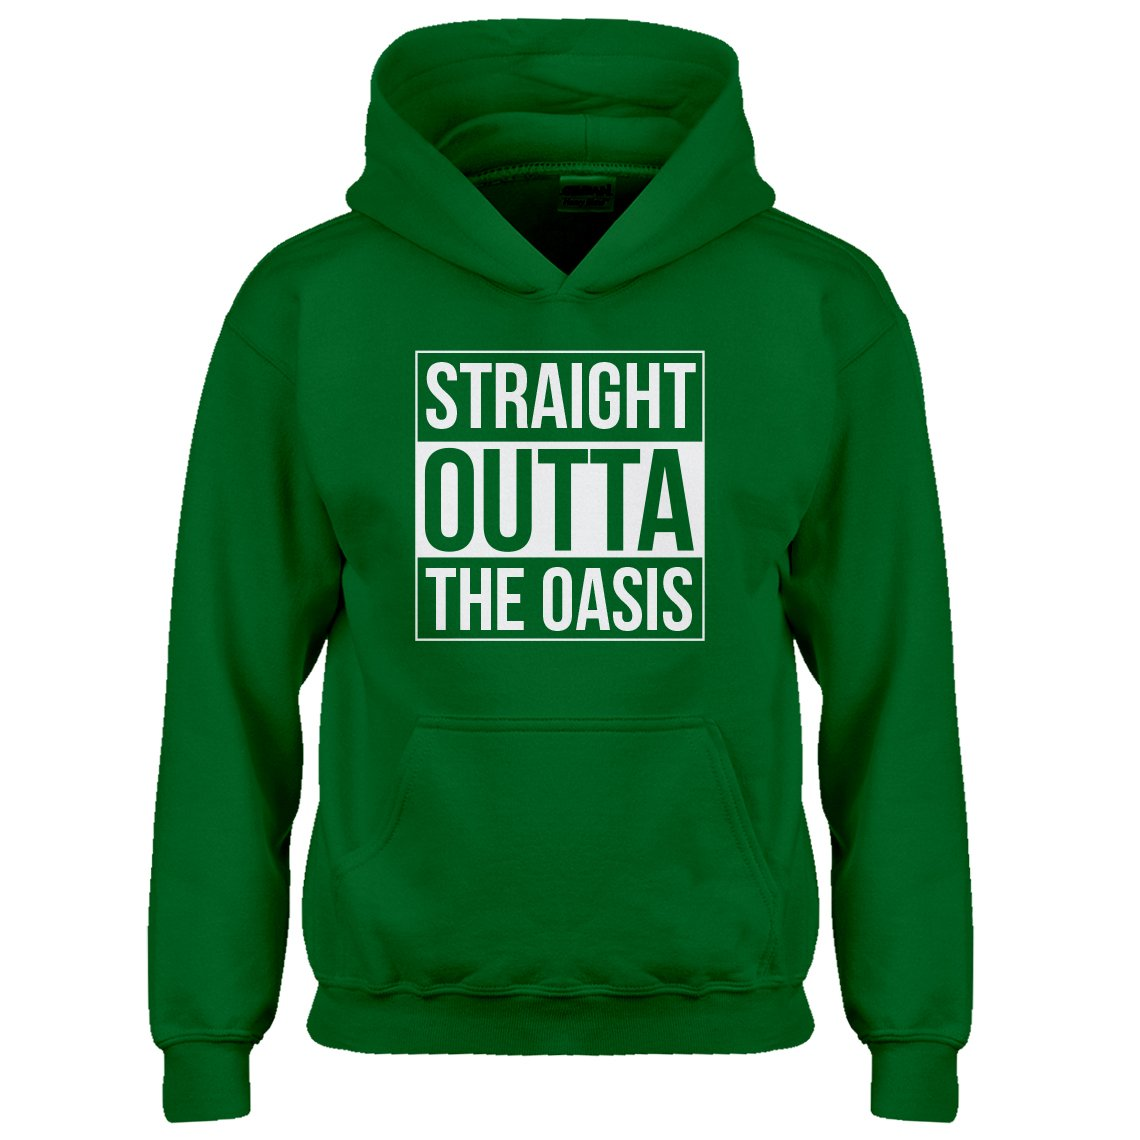 Indica Plateau Straight Outta the Oasis Kids Hoodie 3364-Z